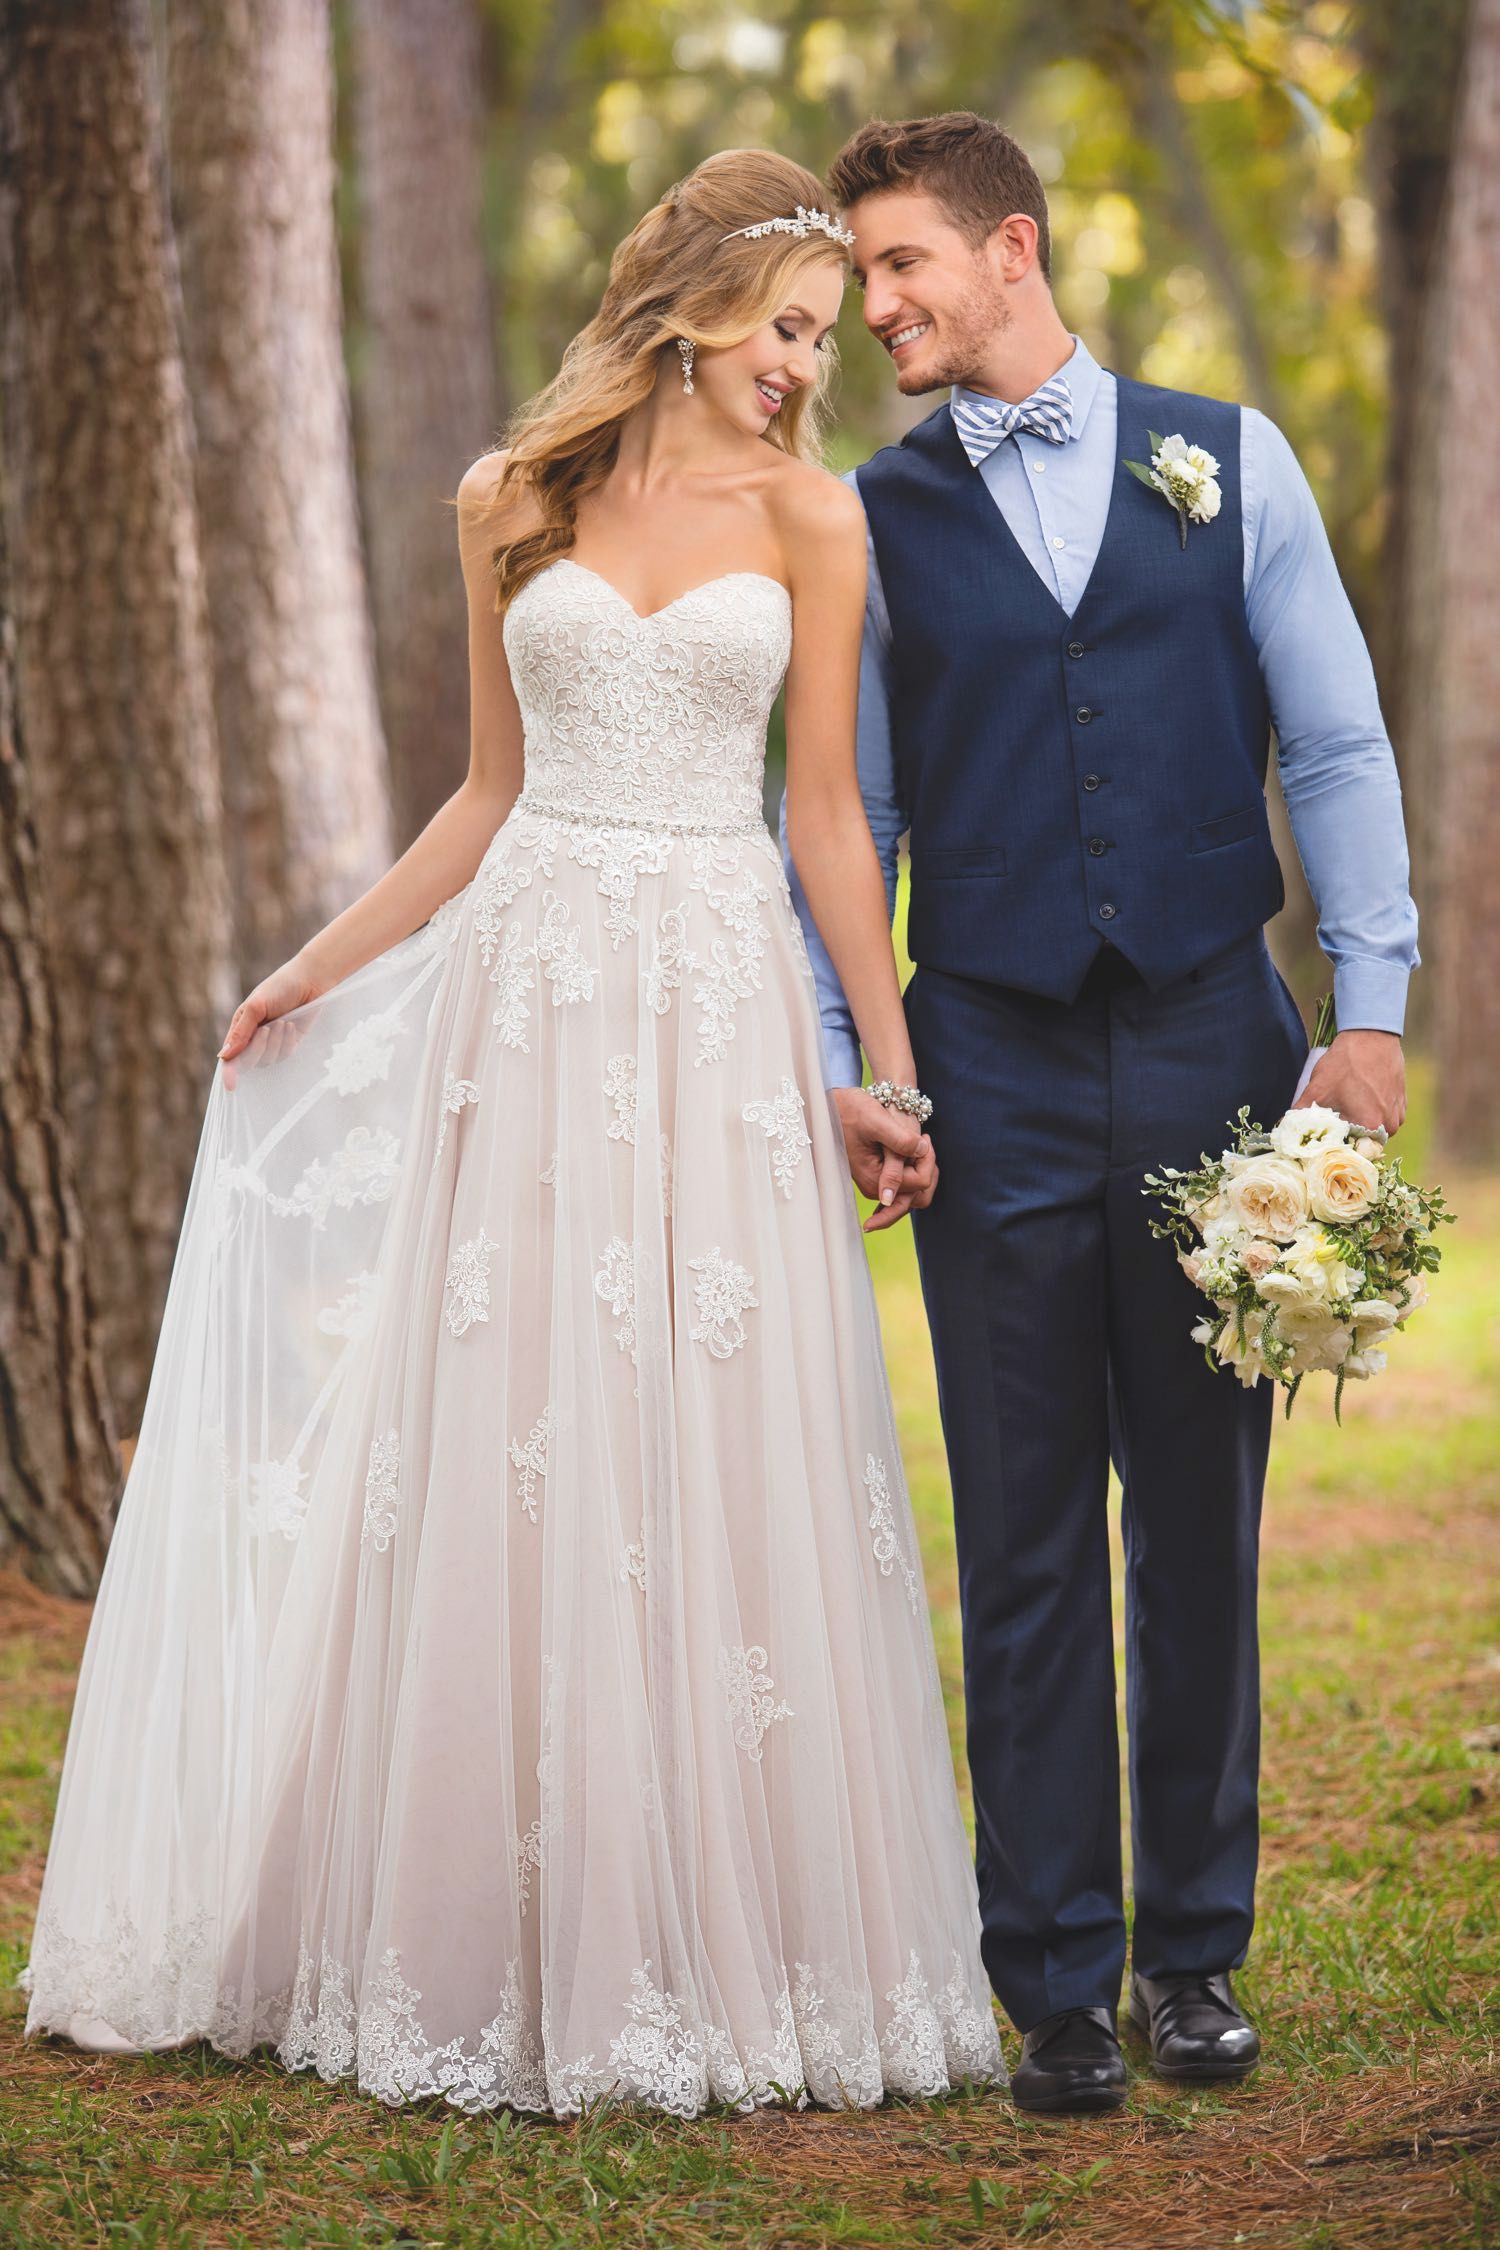 Floor-Length Lace Appliqued Wedding Dress with Sweetheart Neckline - Mr. & Mrs. Tomorrow